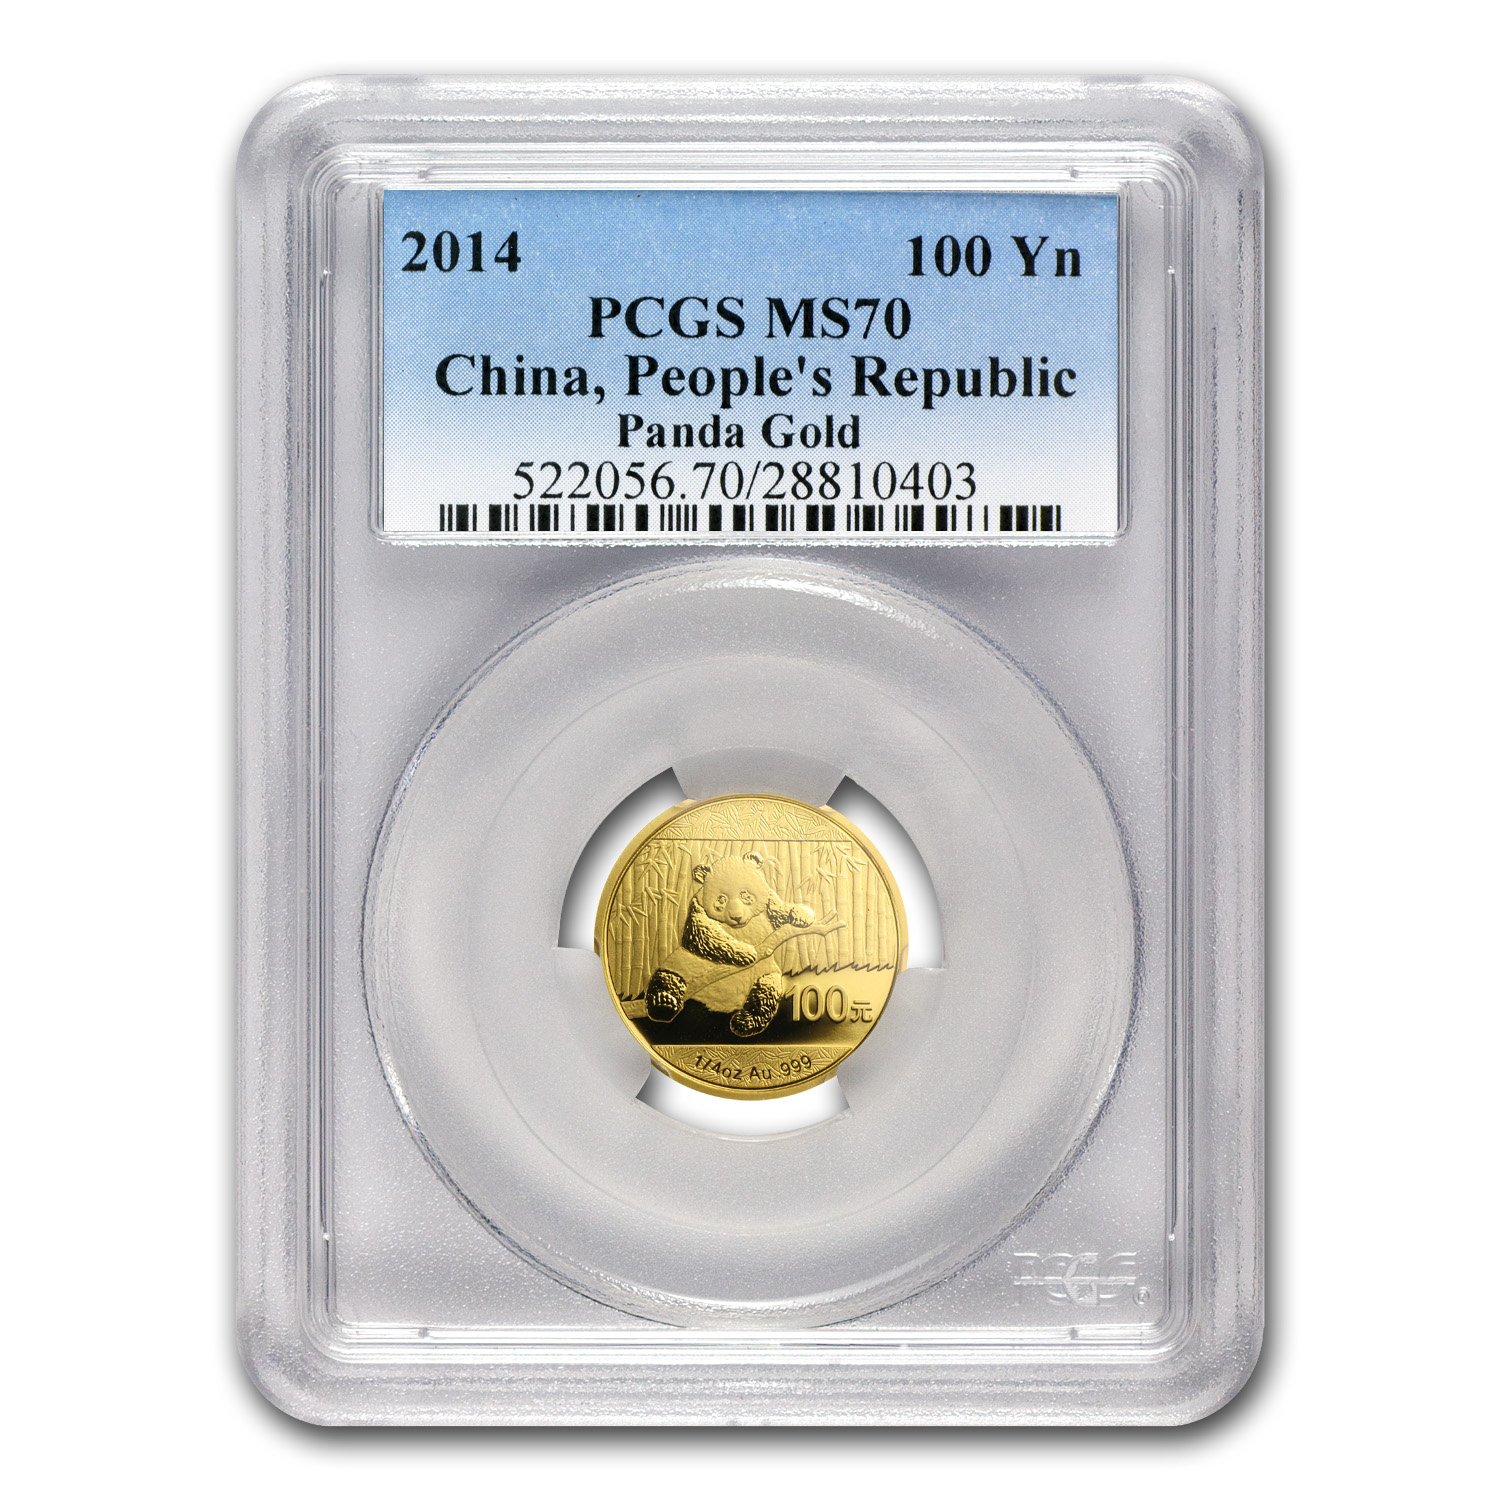 2014 China 1/4 oz Gold Panda MS-70 PCGS